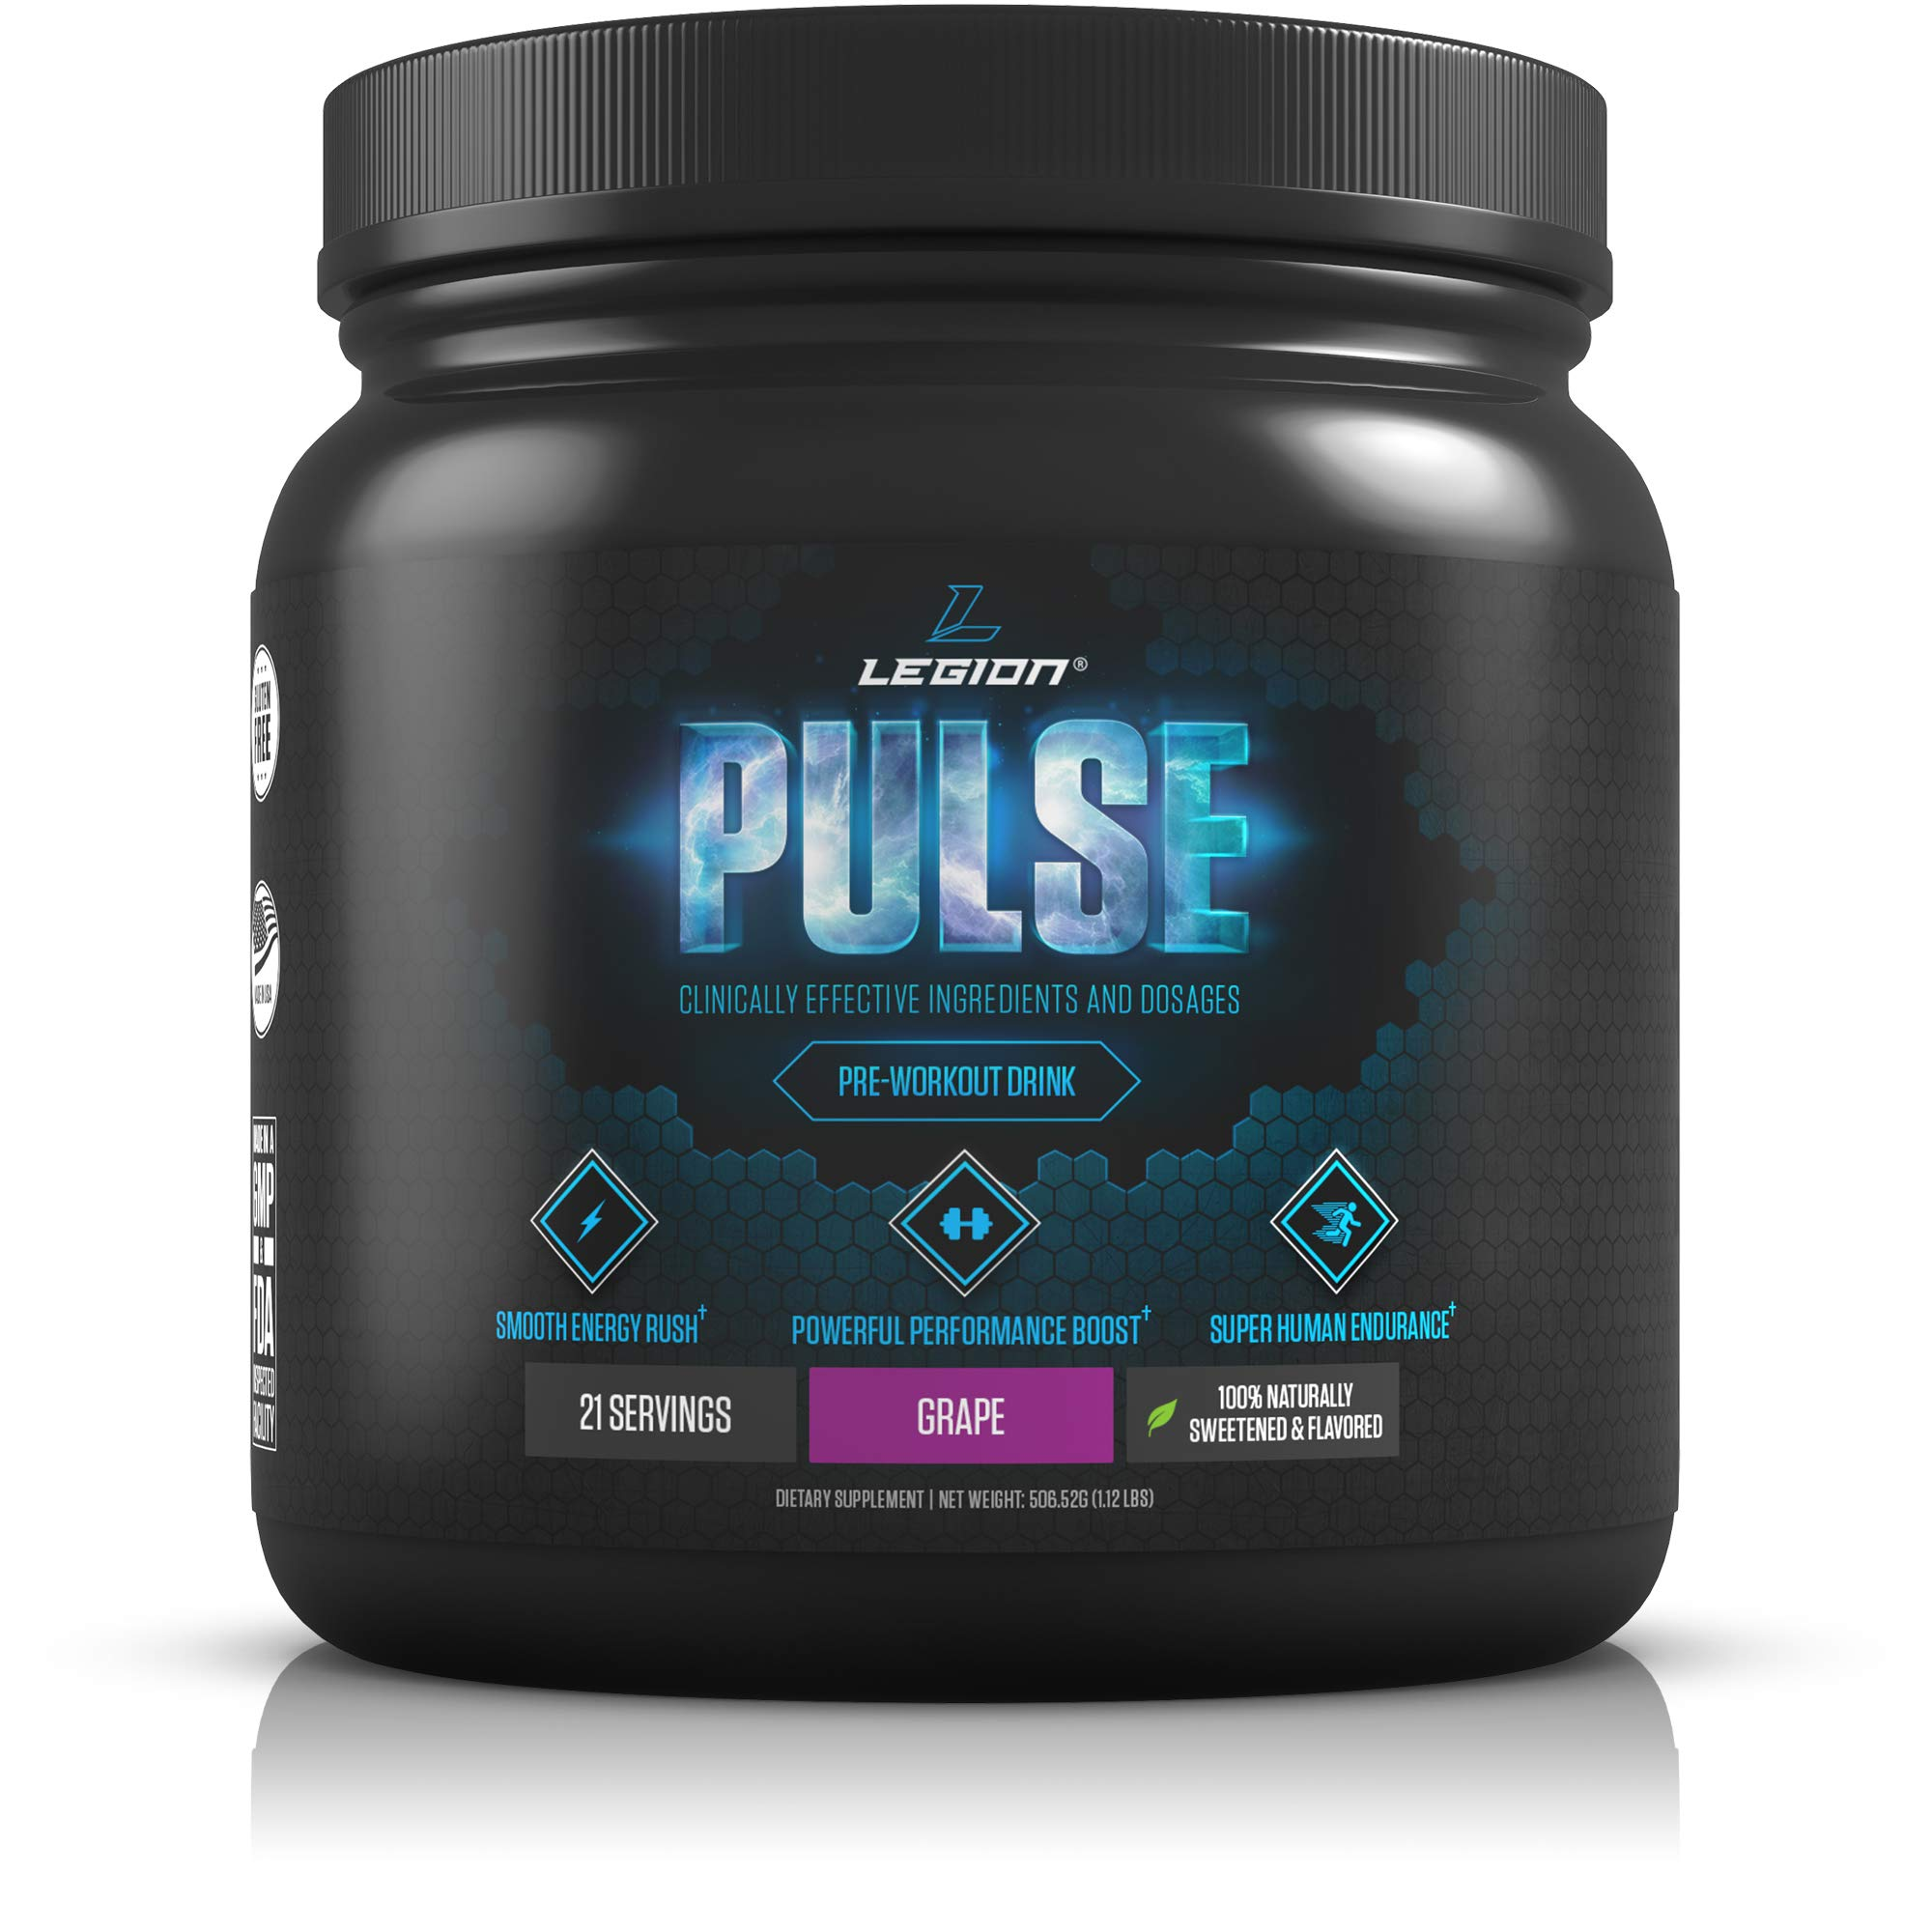 Legion Pulse Pre Workout Supplement - All Natural Nitric Oxide Preworkout Drink to Boost Energy & Endurance. Creatine Free, Naturally Sweetened & Flavored, Safe & Healthy. Grape, 21 Servings by Legion Athletics